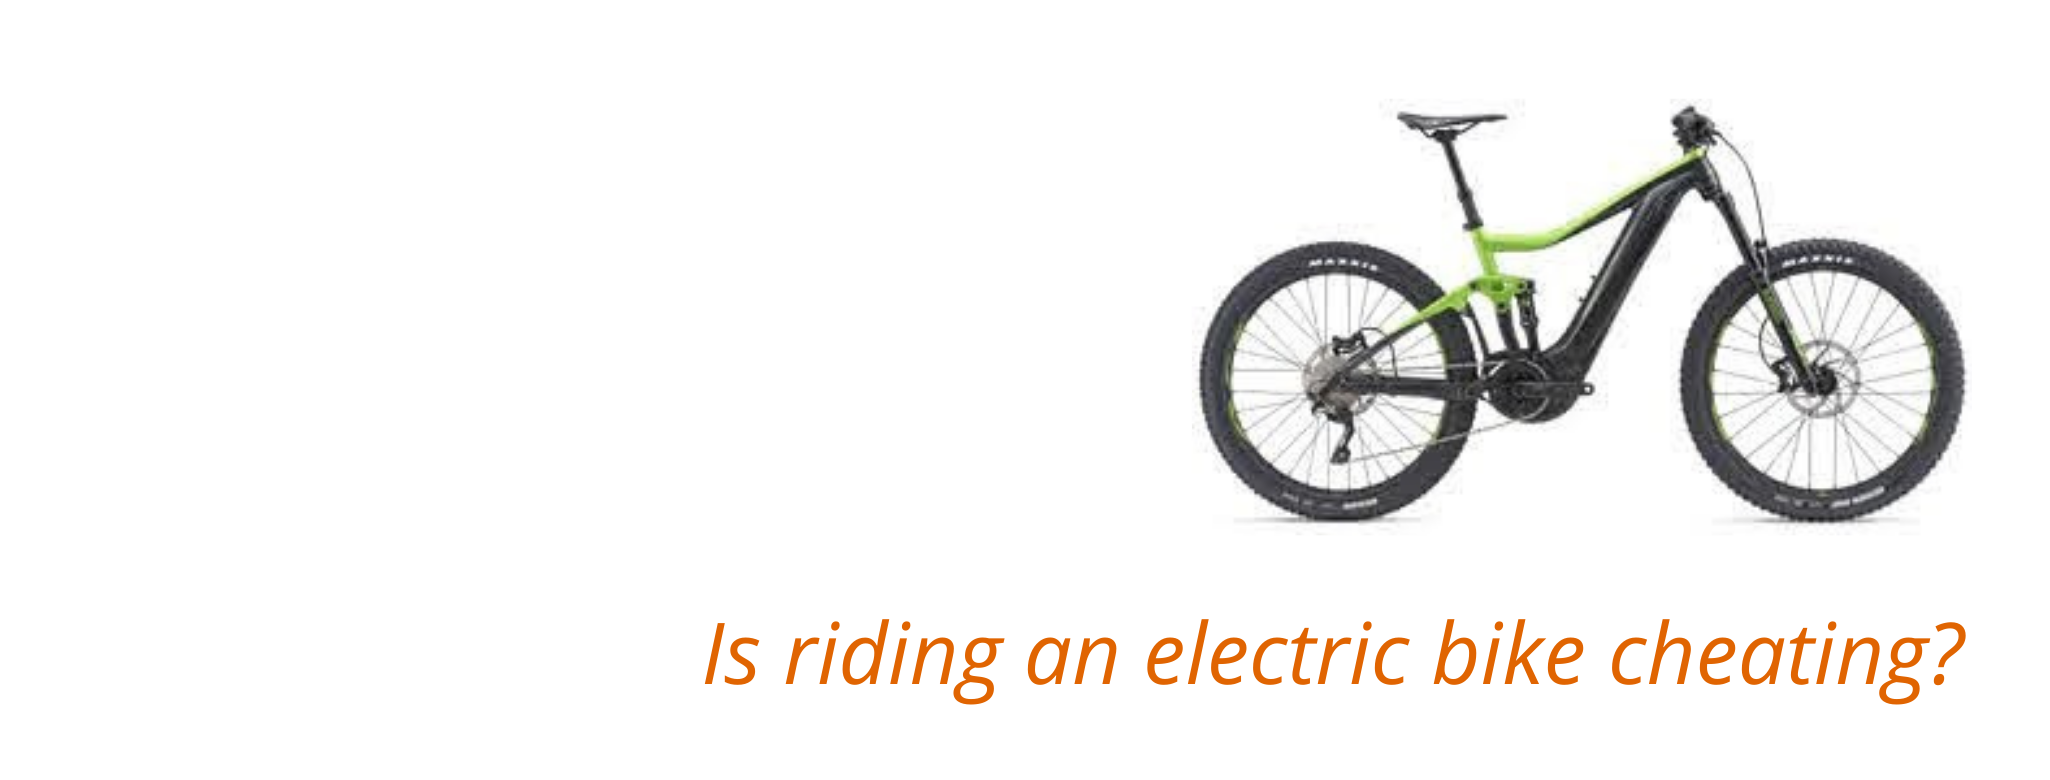 Is riding an electric bike cheating?